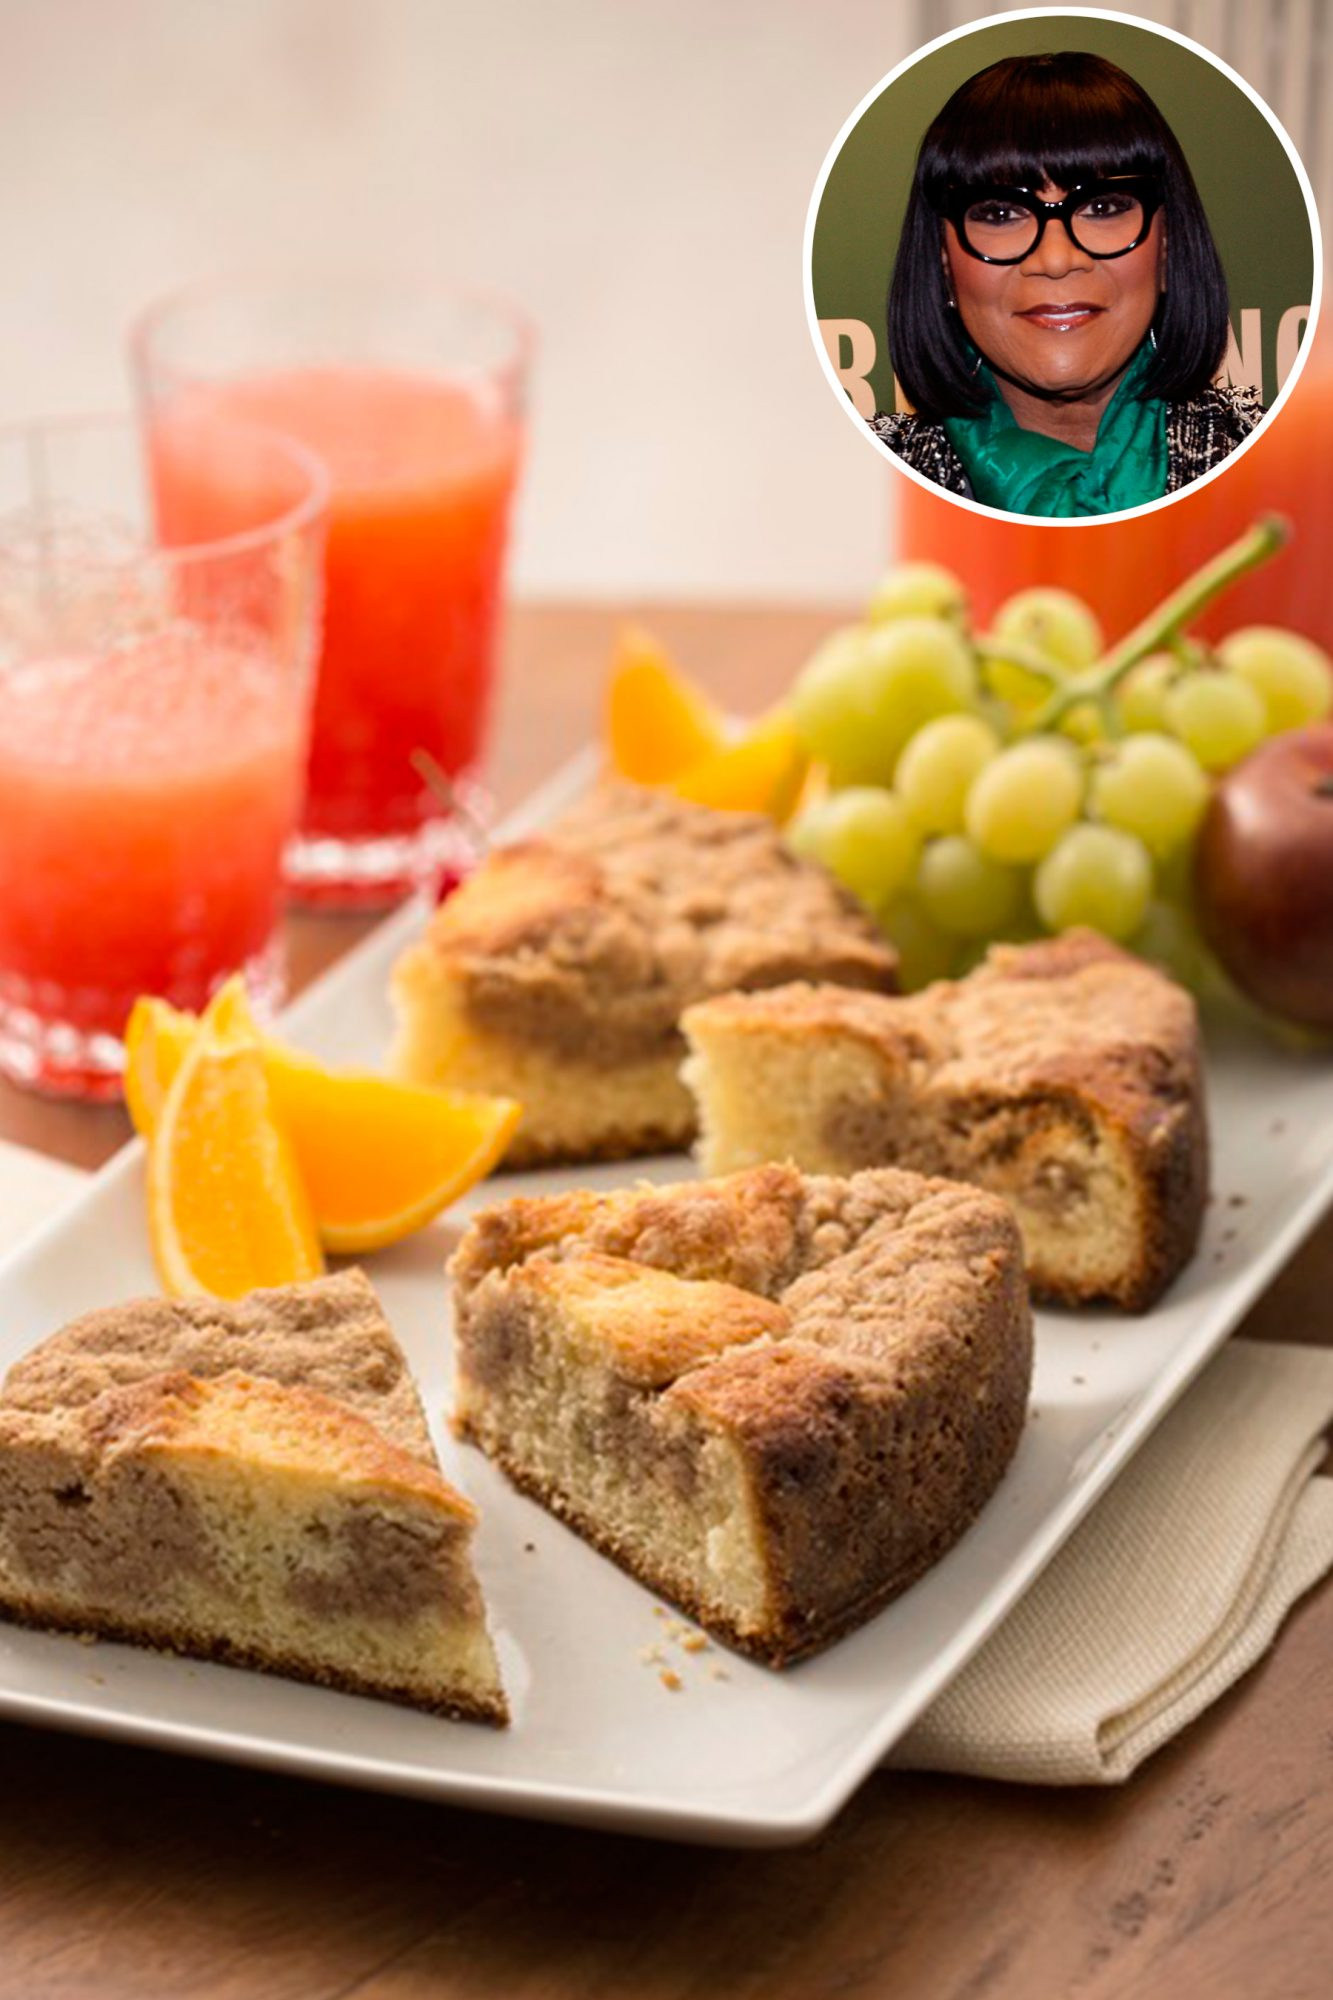 Celebrate Mother's Day with Patti LaBelle's cinnamon crumb cake